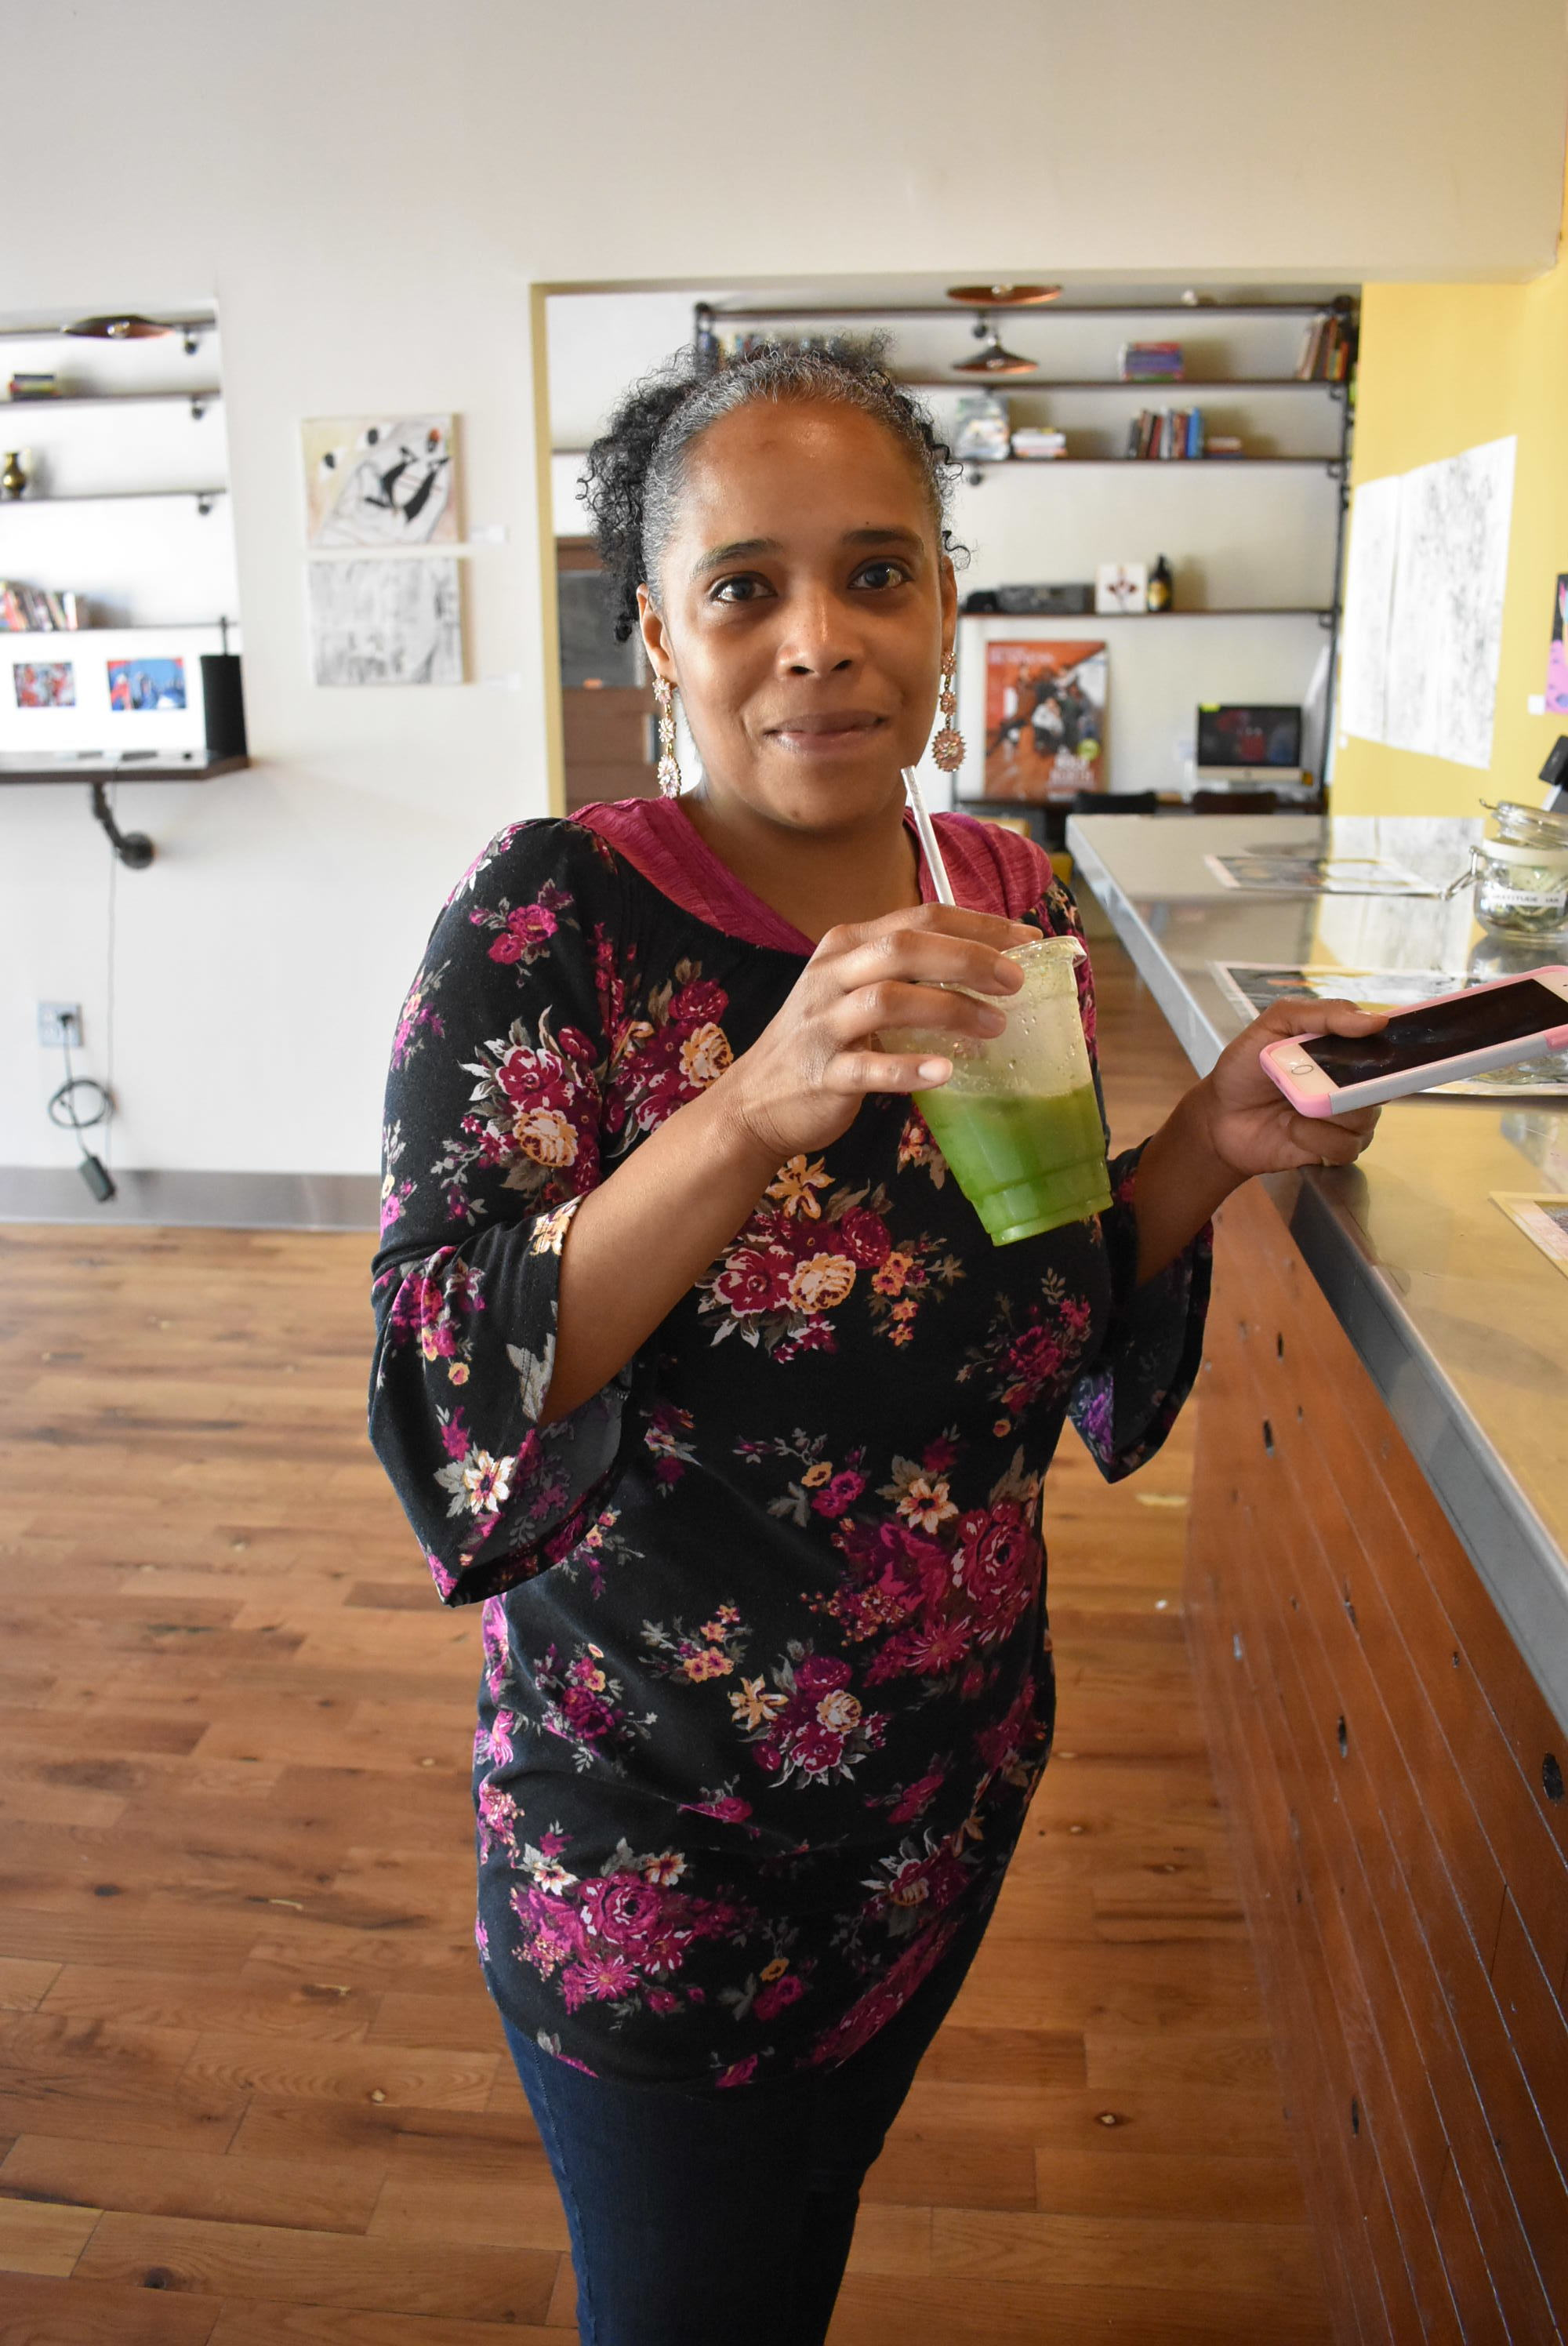 Northsider Angel Peterson visited Got the Juice on May 15. The space is grab-and-go, but there is also limited seating for those who want to hang around. According to the owner, Sierra Carter, they hope to offer more seating space for Got The Juice customers in the future.  Photo by Cirien Saadeh